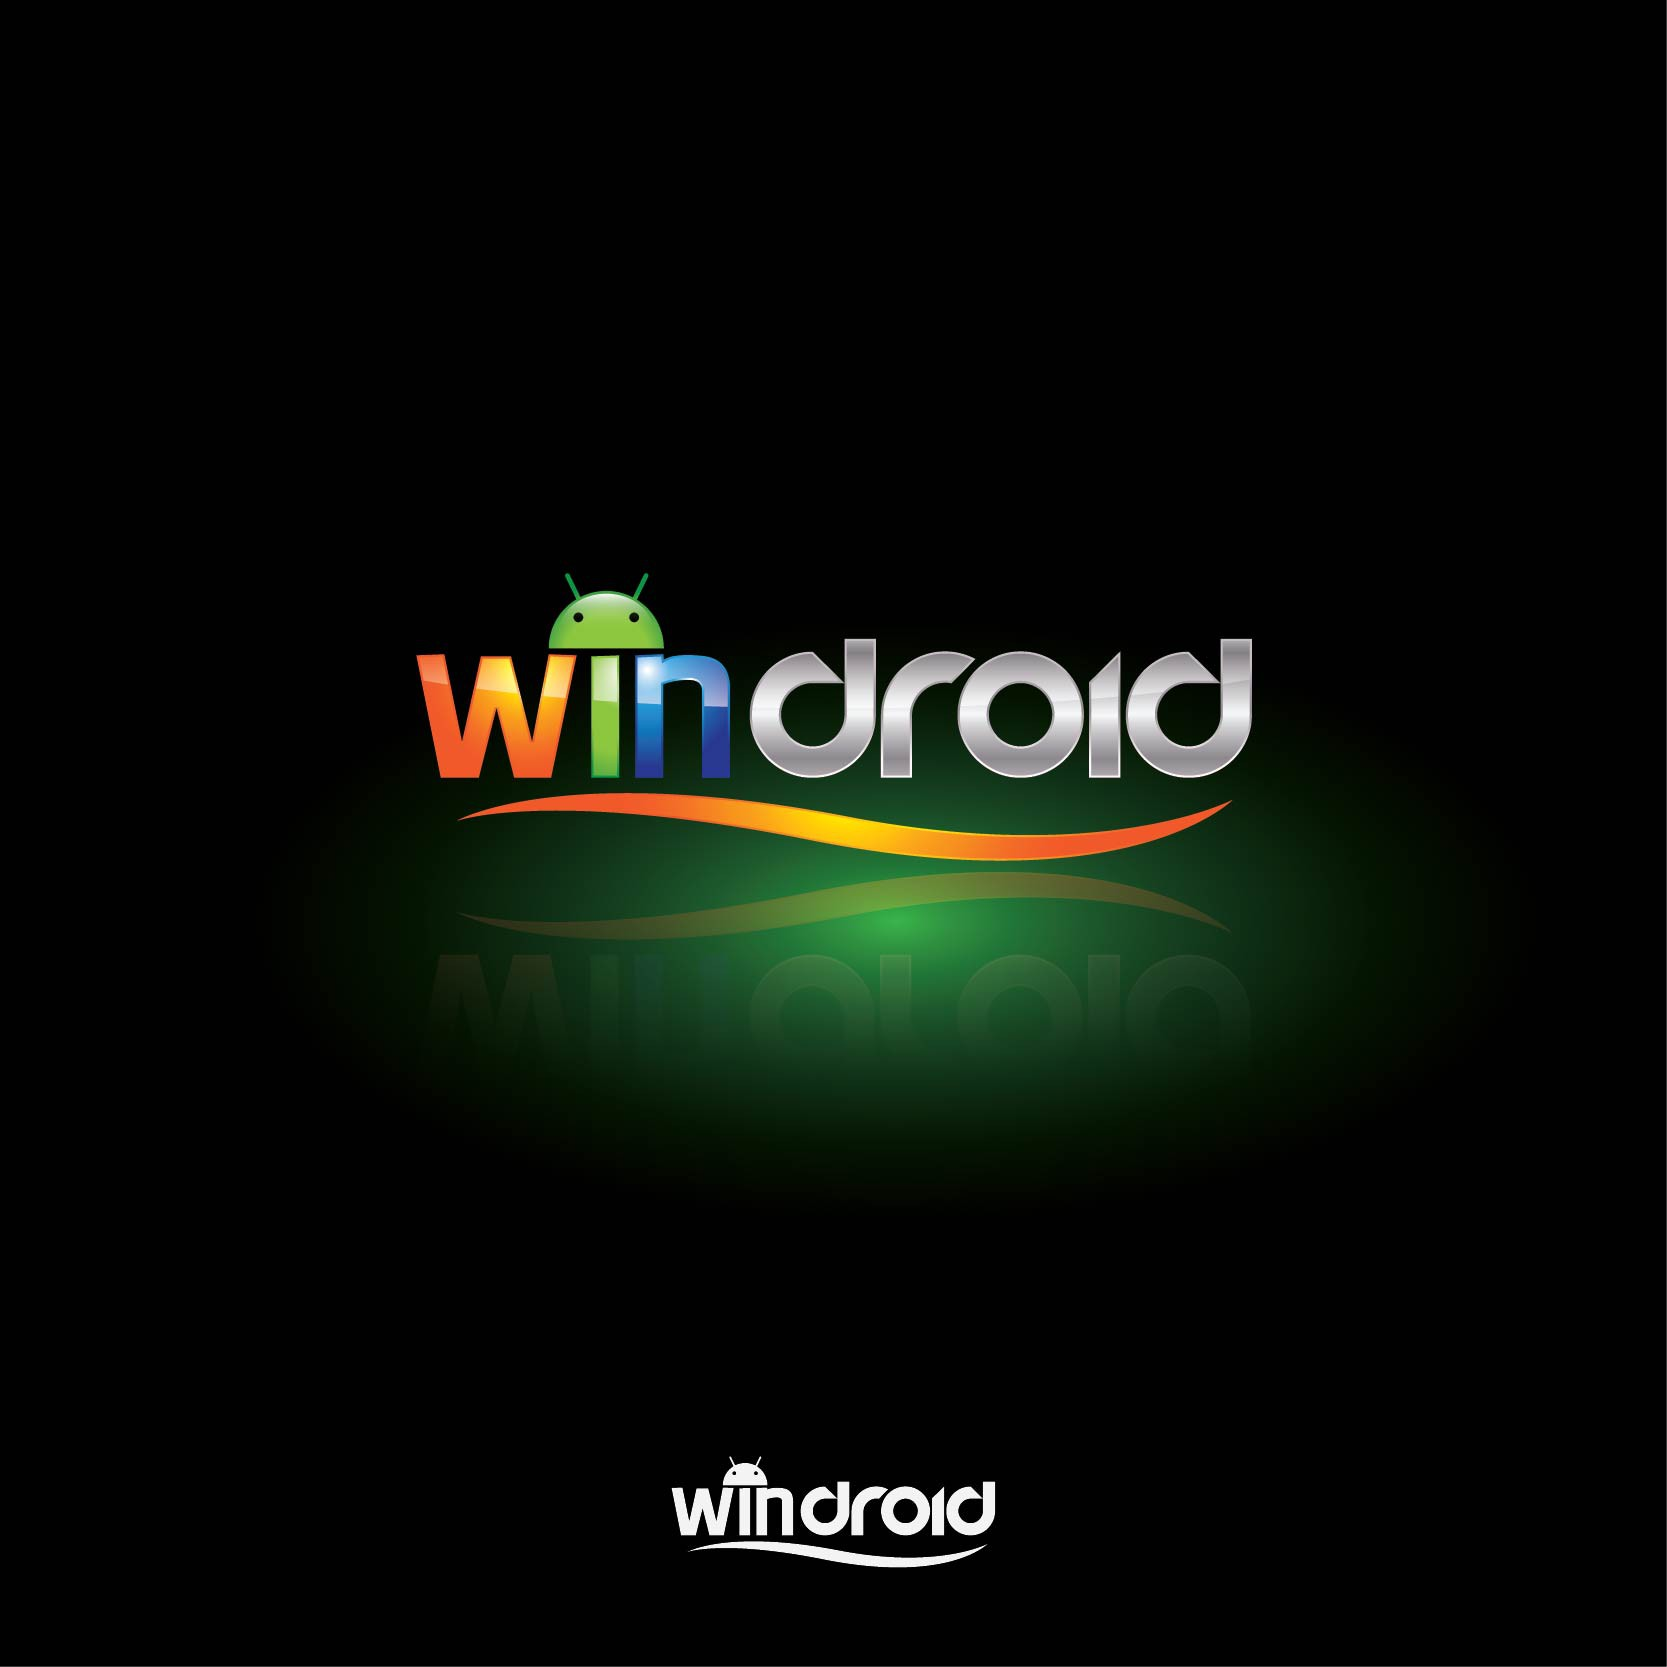 Create the next logo for WinDroid